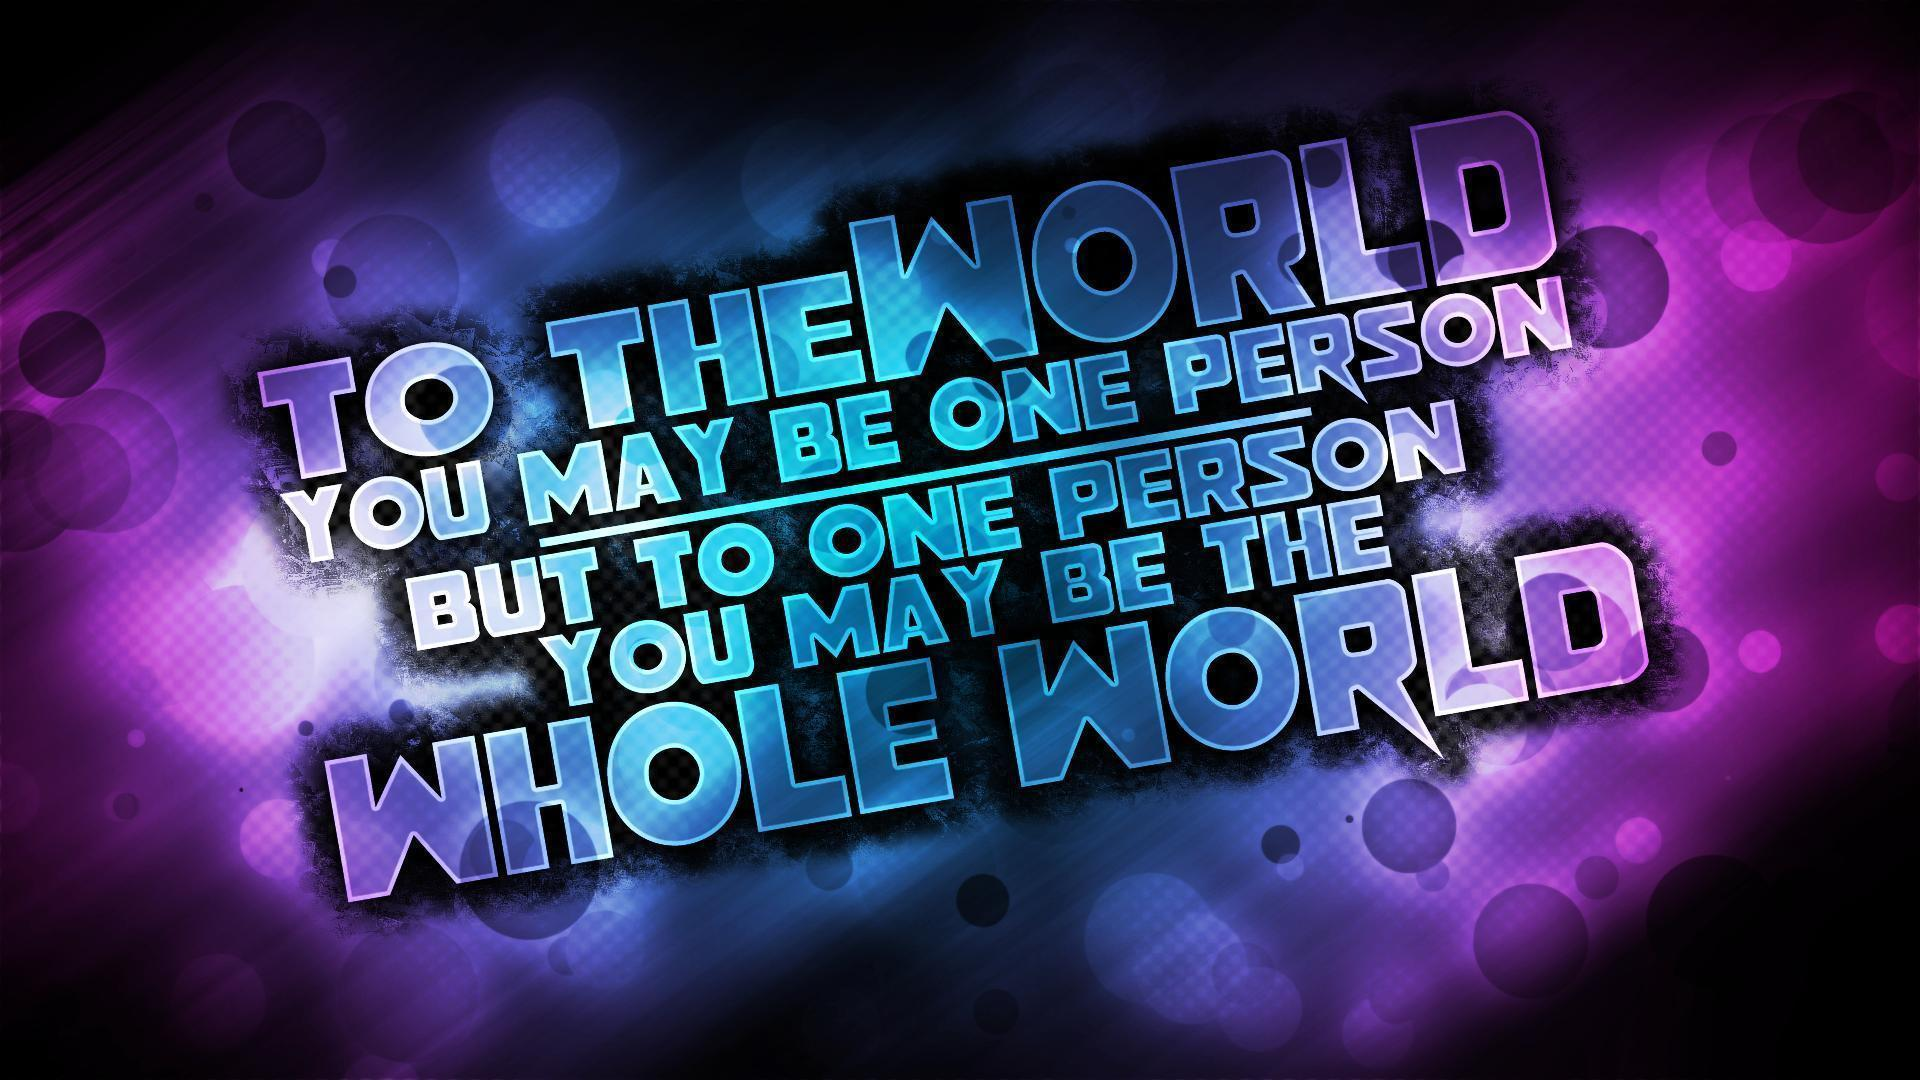 Love Wallpapers Hd With Quotes Wallpapers 2014